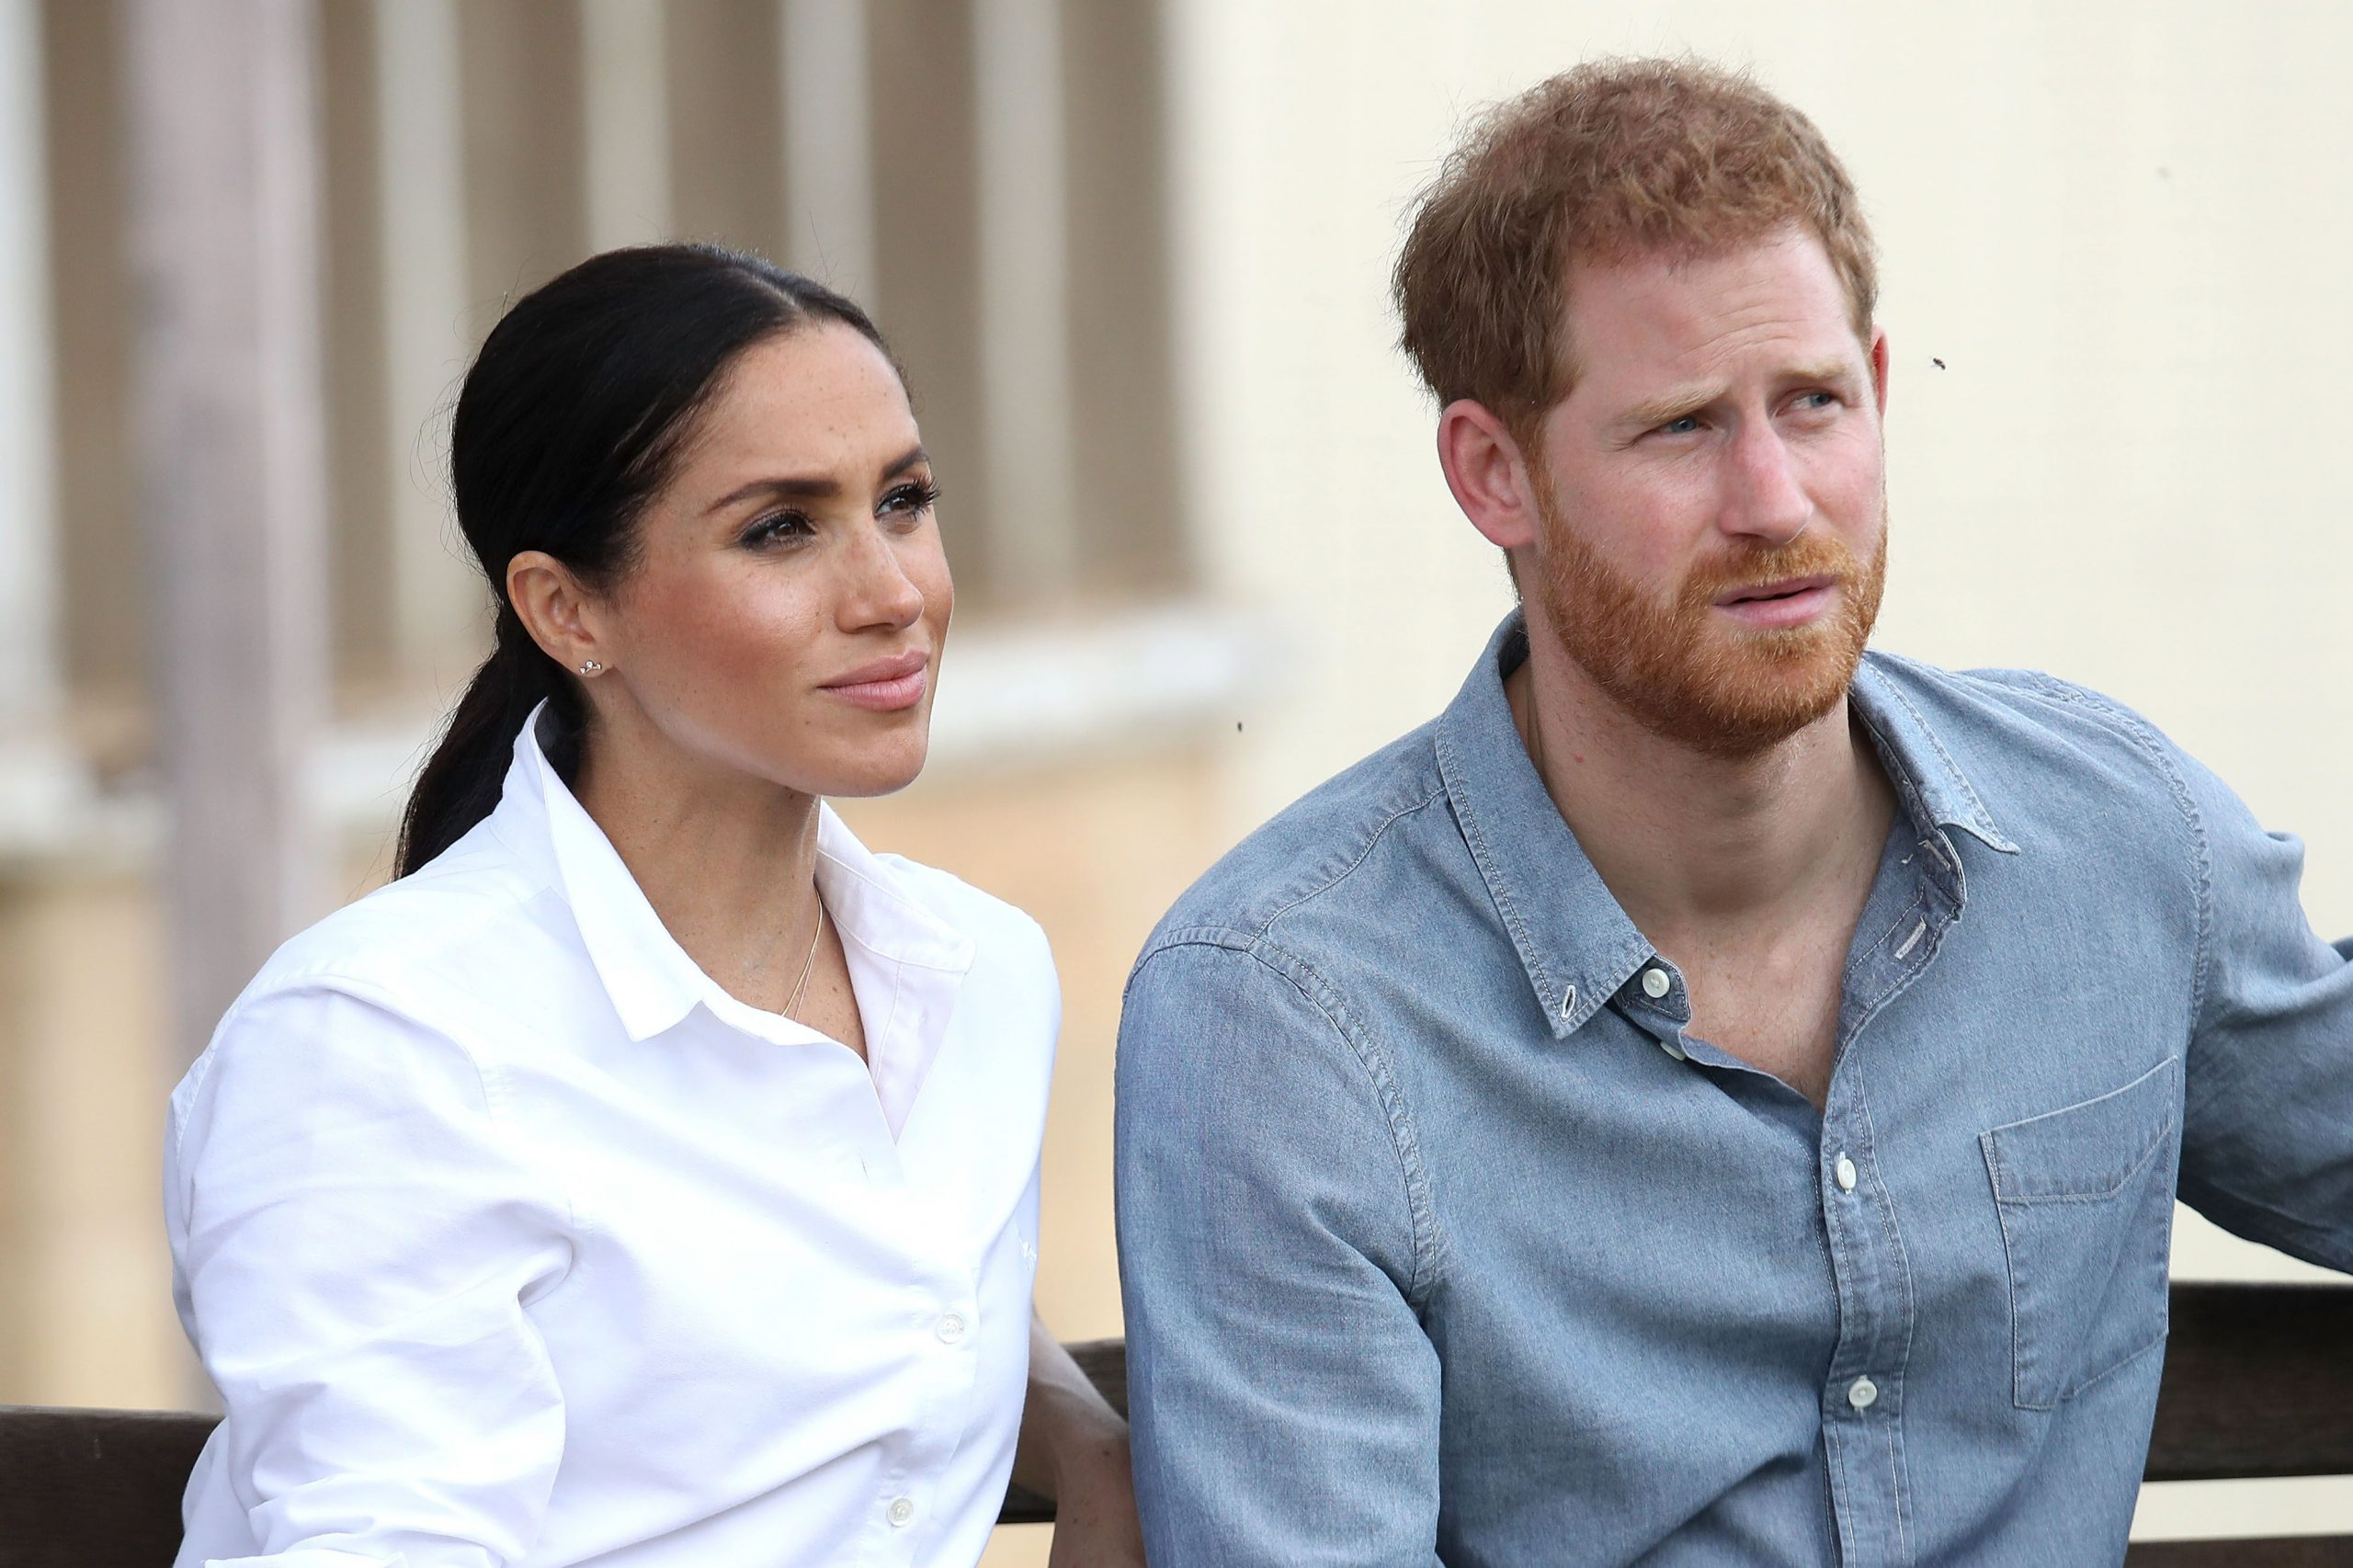 Prince Harry and Meghan Markle expecting their second child